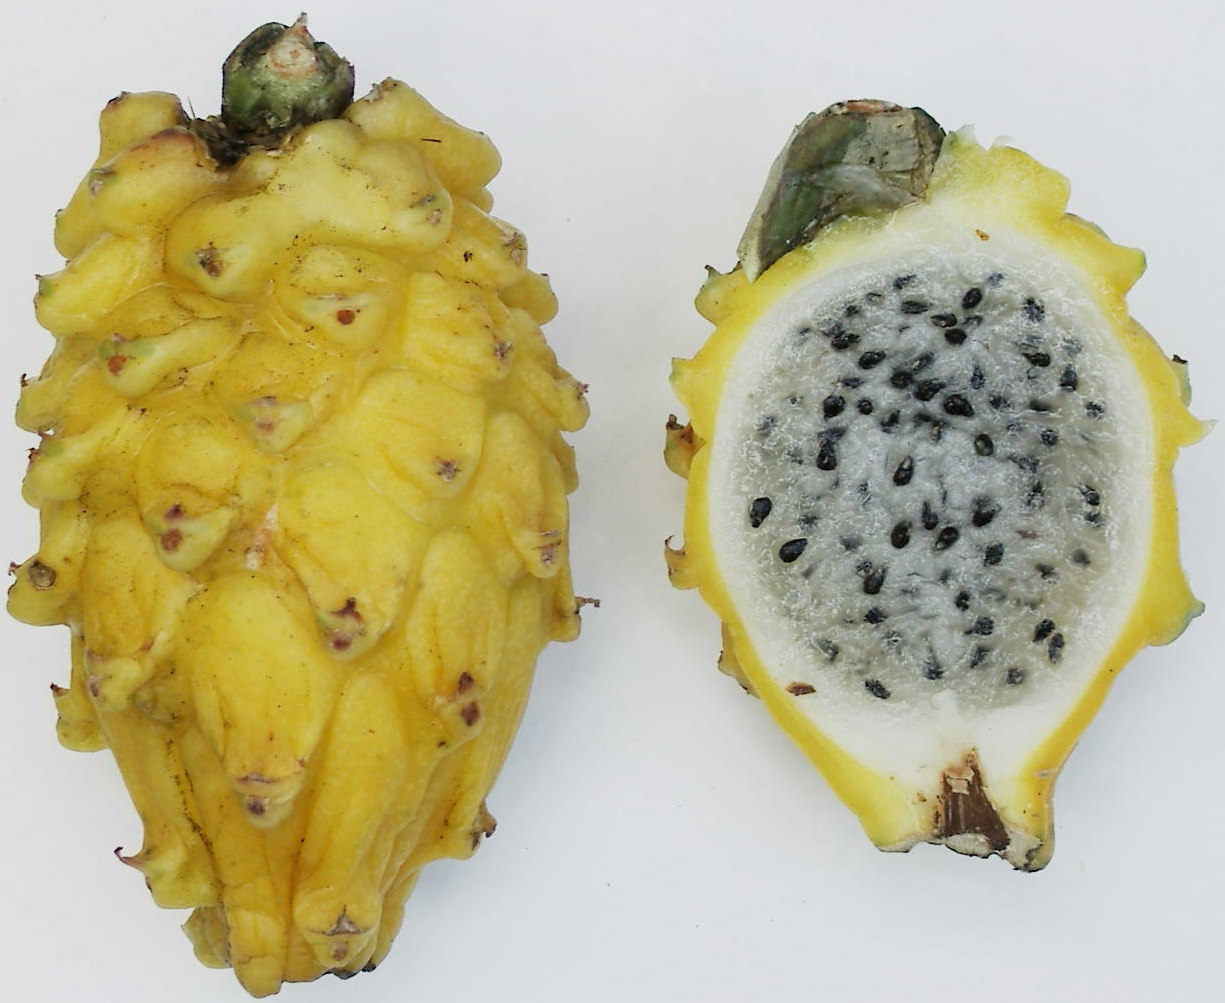 Yellow Dragon Fruits Wallpapers, Cheap Yellow Dragon Fruits, Yellow Dragon Fruits Cheap, Yellow Dragon Fruits Buy, Buy Cheap Yellow Dragon Fruits